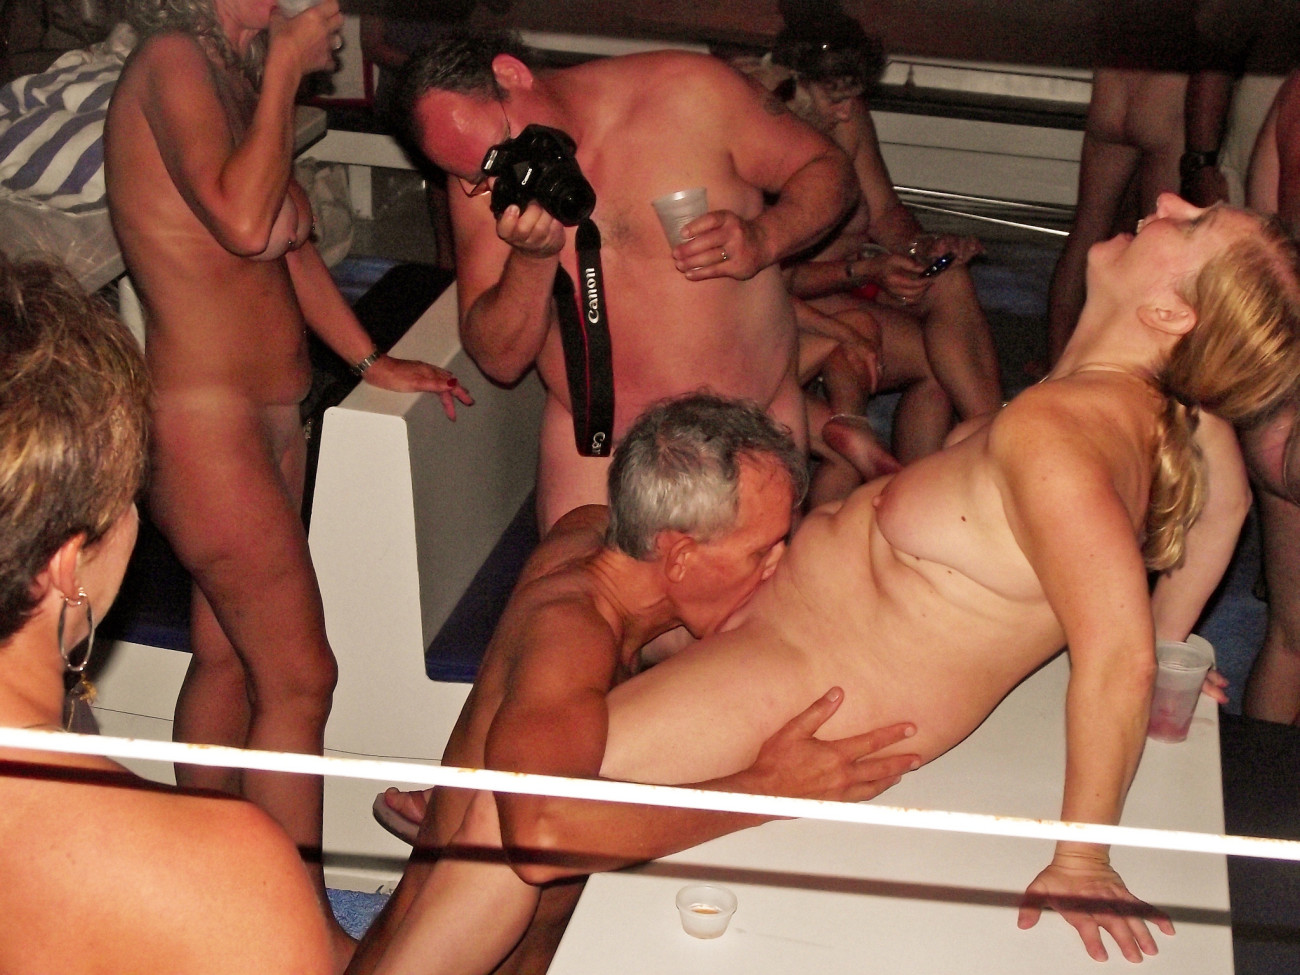 These are the wild swinger party photos of florida sheriff gregory tony